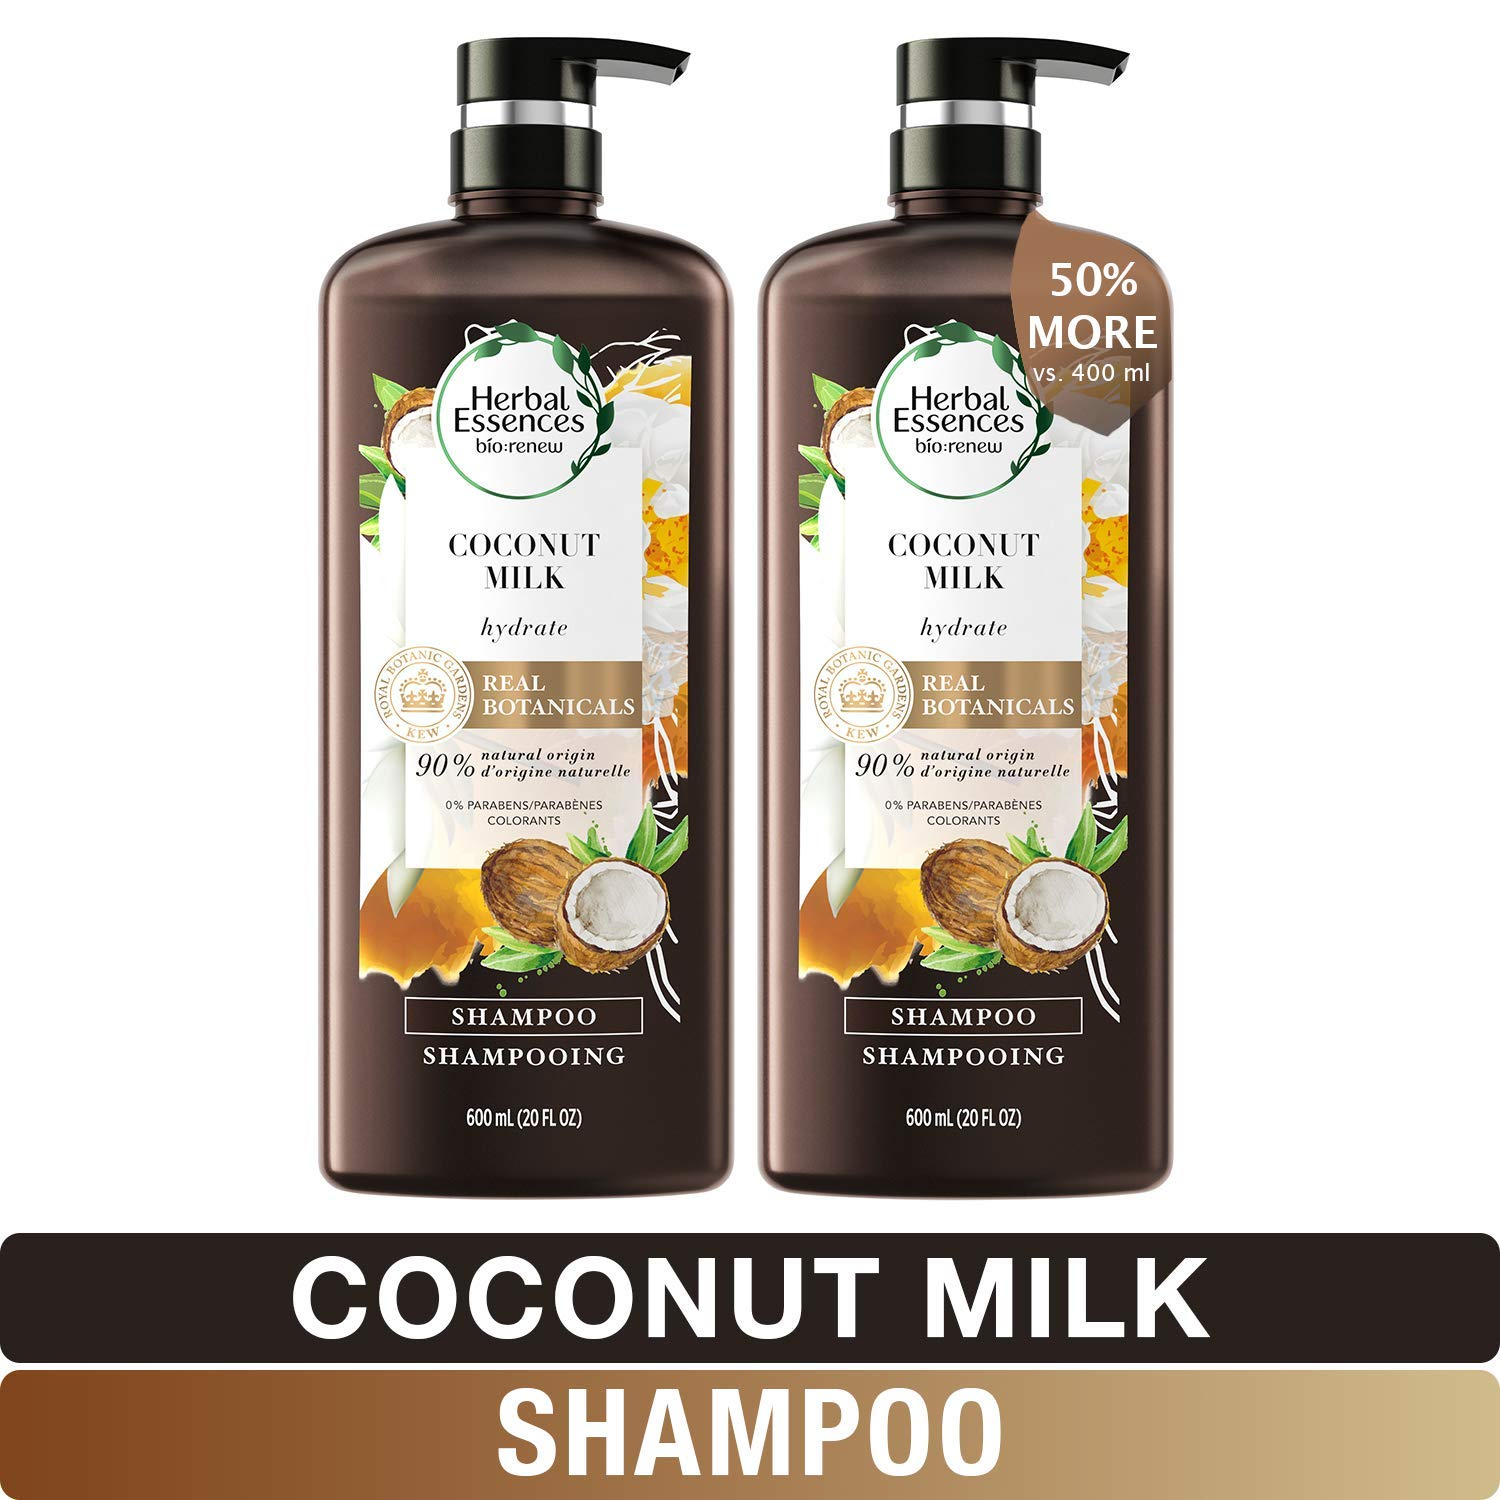 Herbal Essences, Shampoo With Natural Source Ingredients, Color Safe, BioRenew Coconut Milk, 20 fl oz, Twin Pack